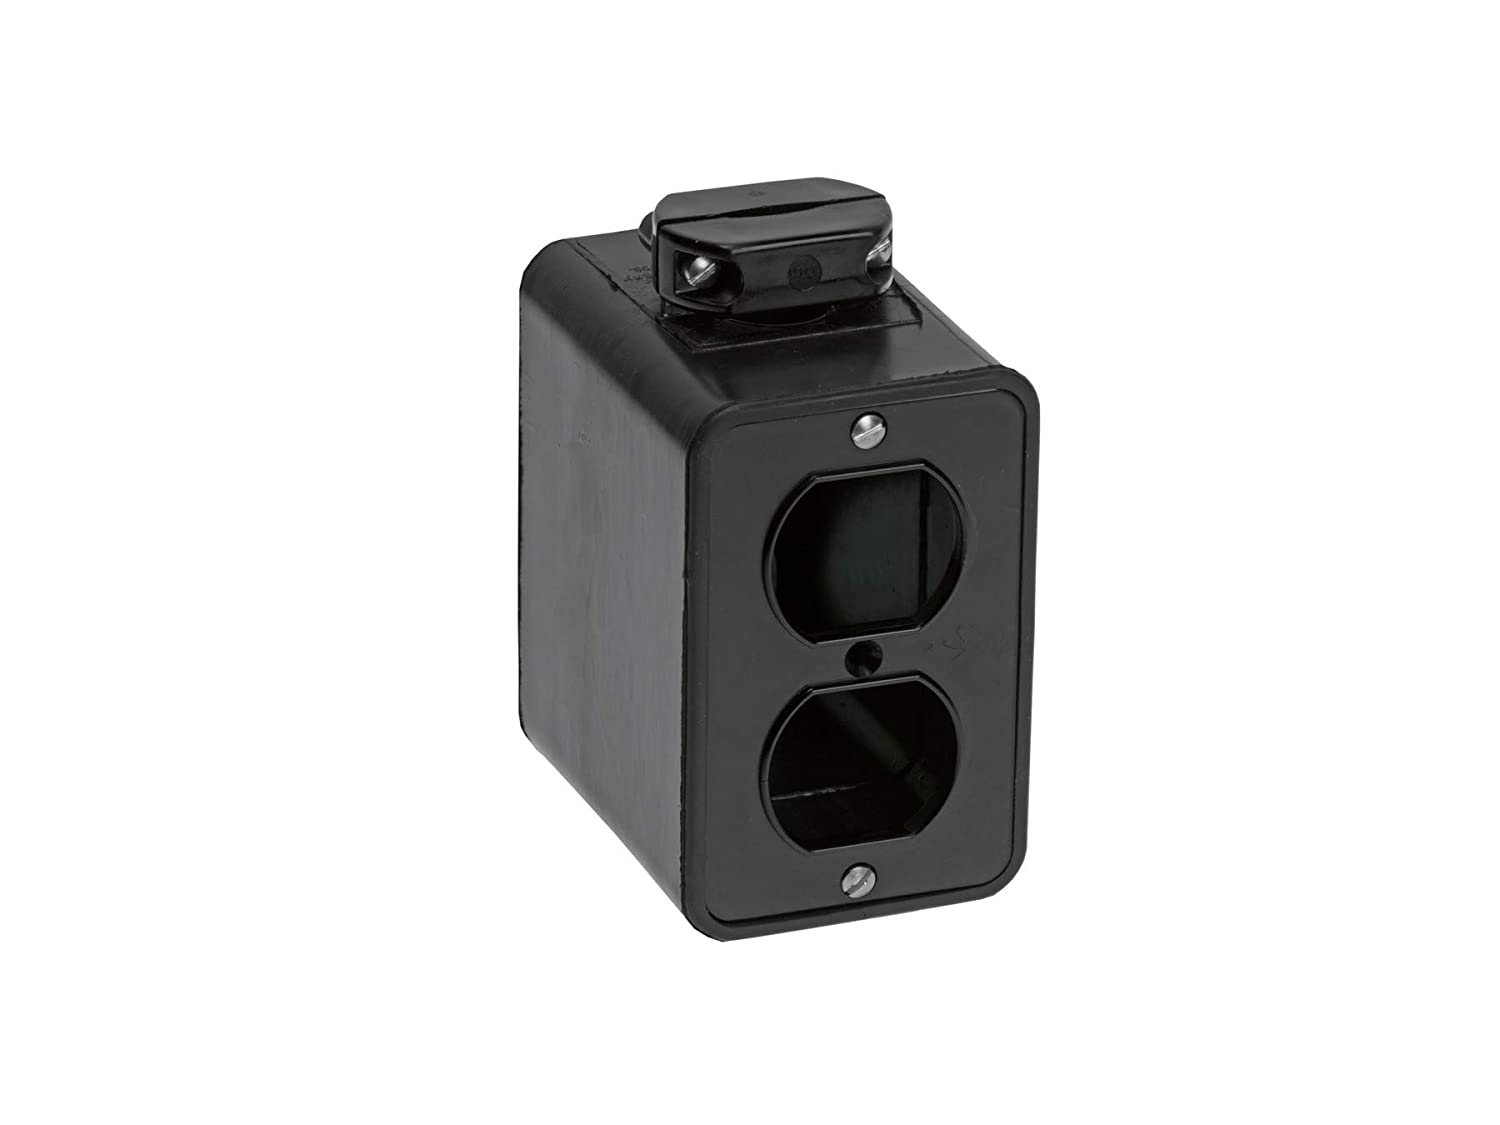 Woodhead 3000BLK Super-Safeway Multiple Outlet Box - Black, Double Sided Mounting Box with Standard Depth, C-Clamp, Duplex Cover Plates